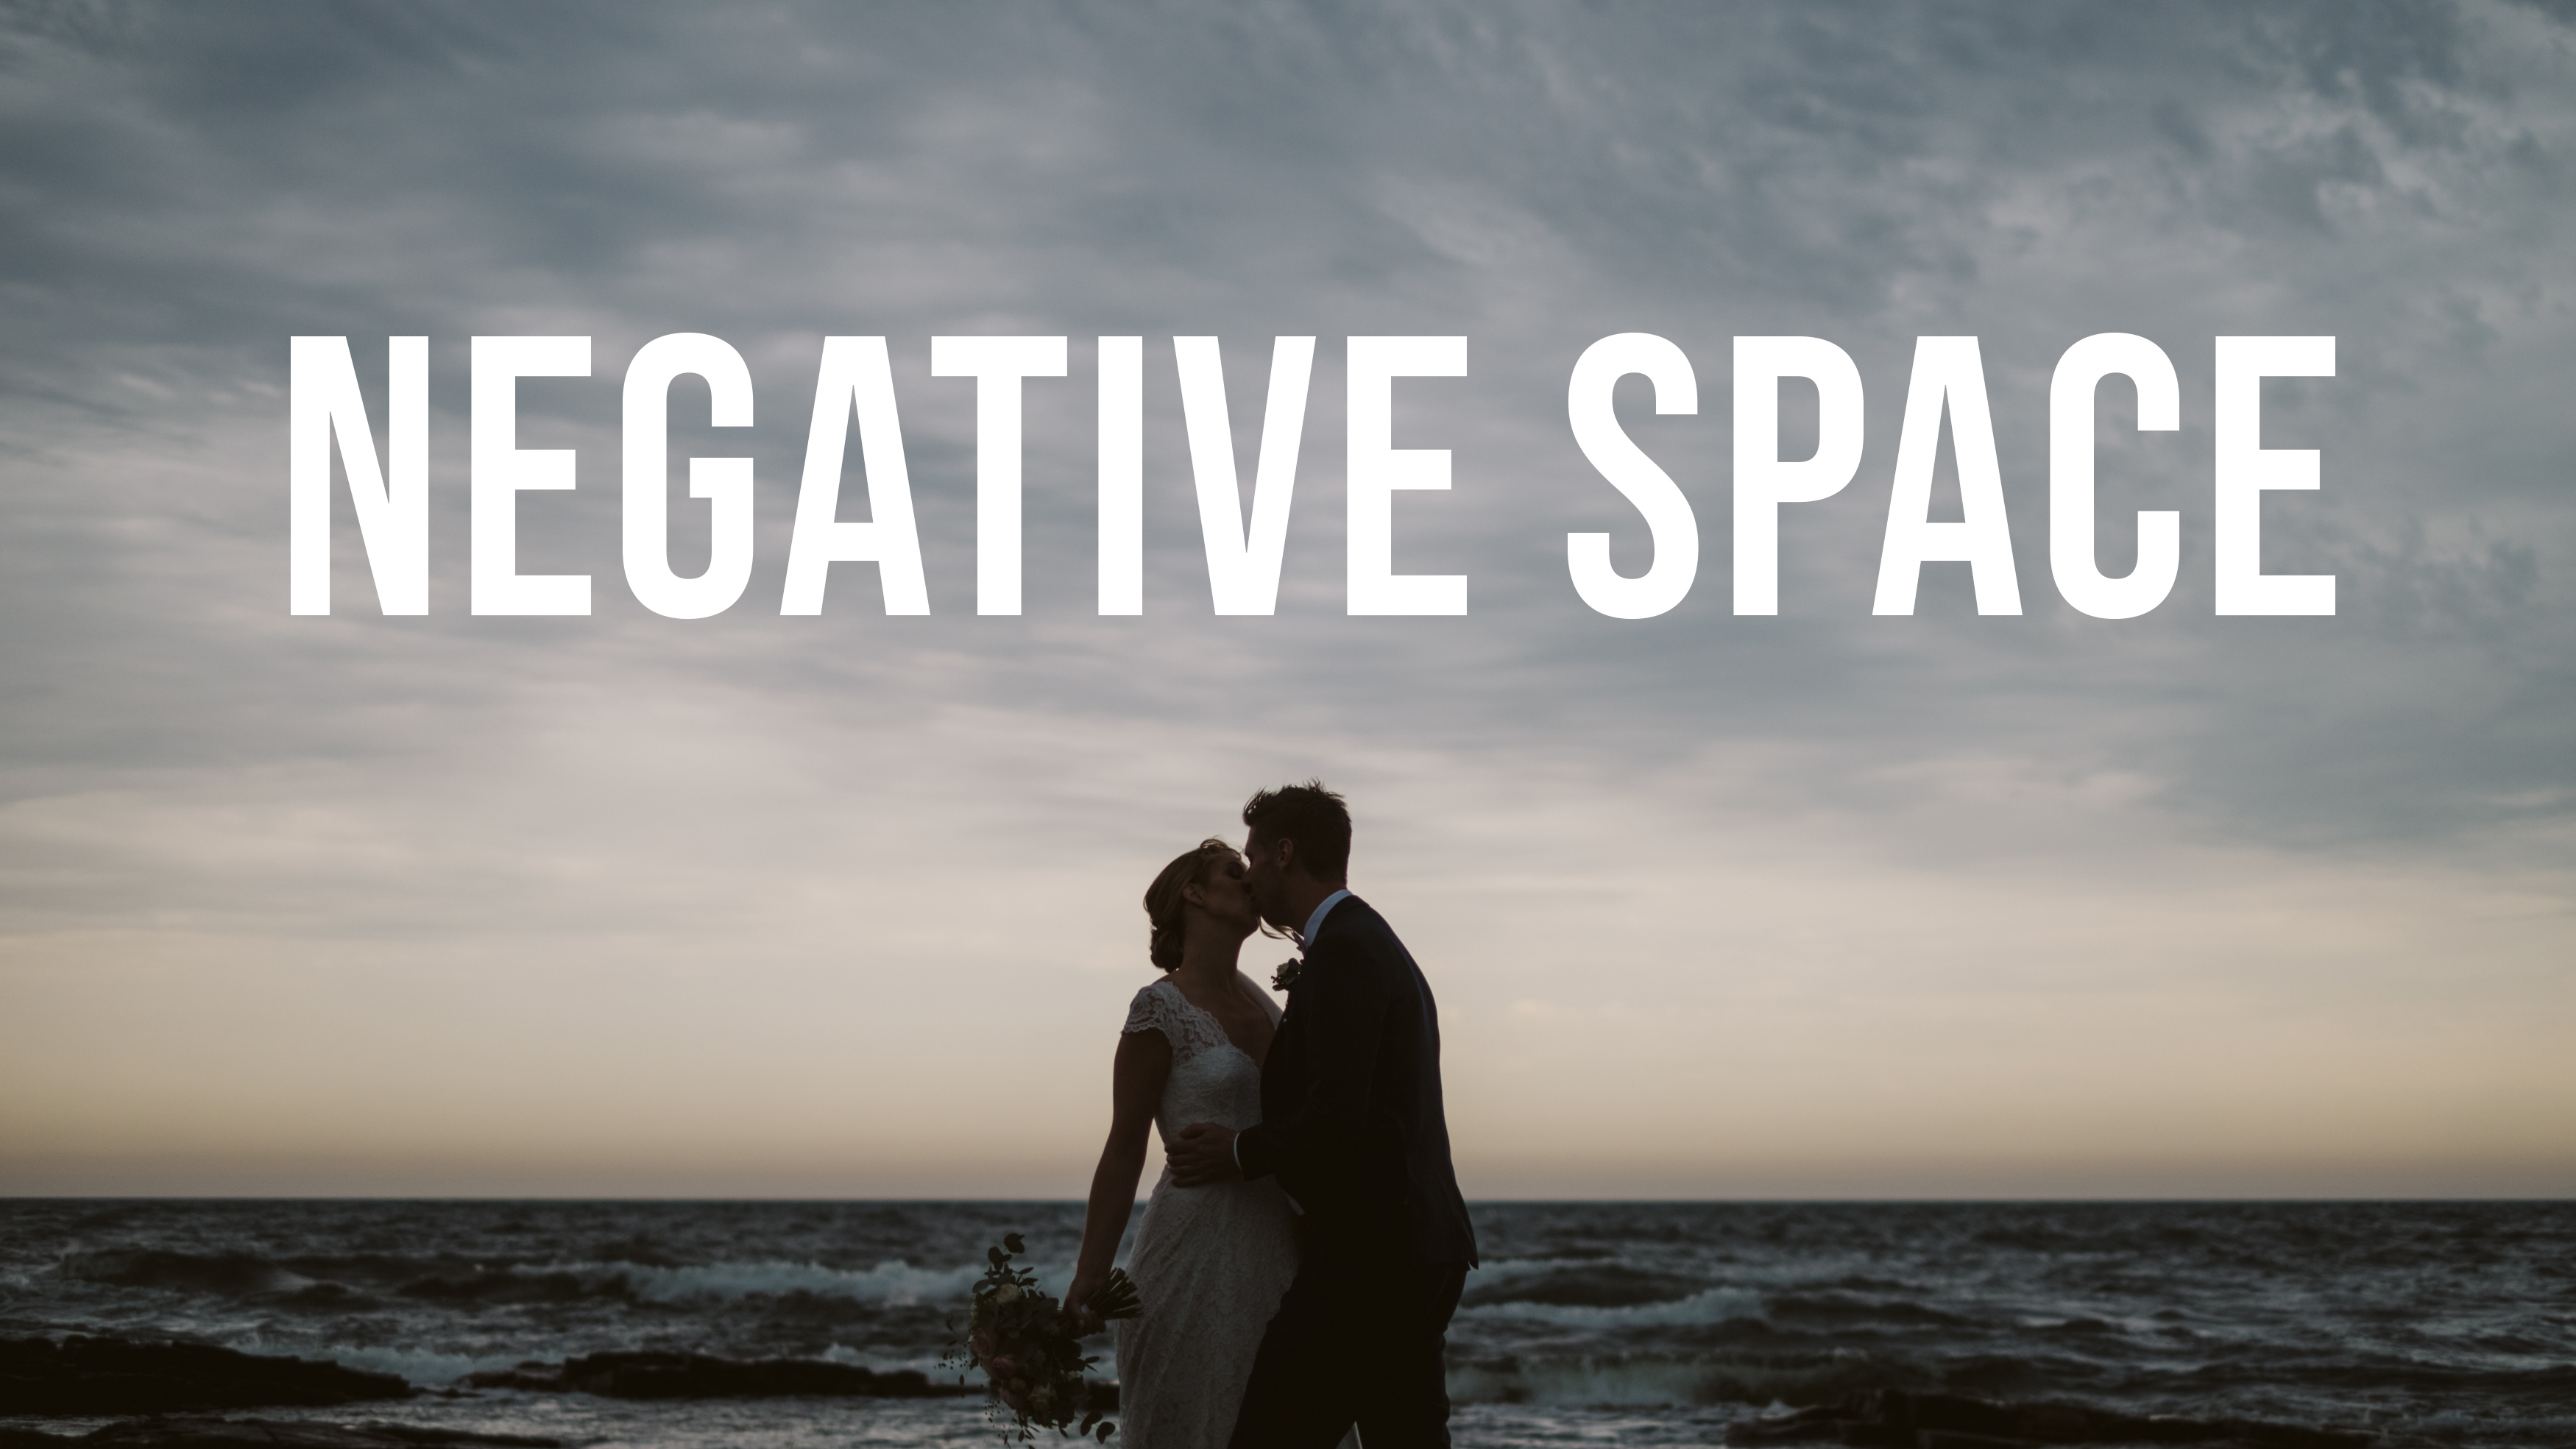 New Video! Composition tips for wedding photography.